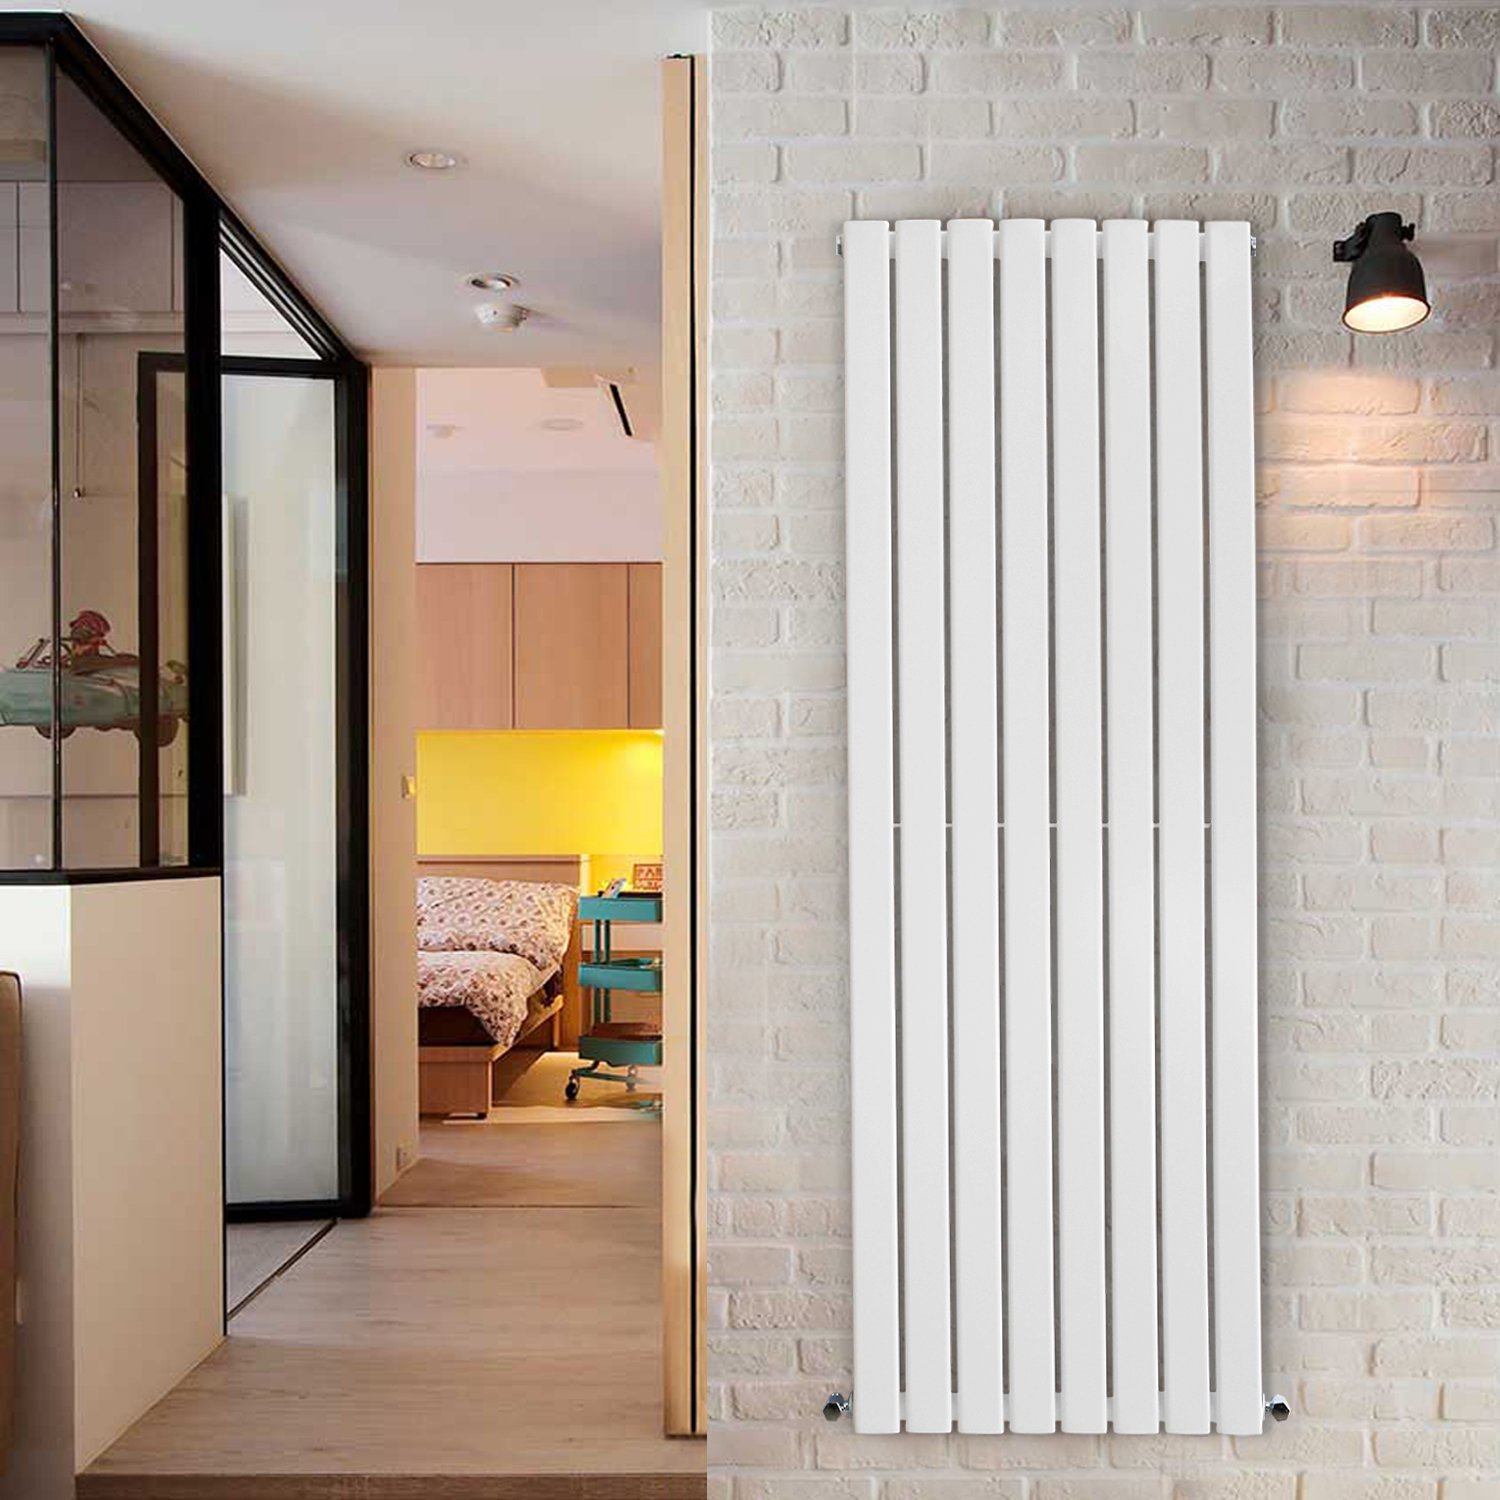 NRG 1800x408 Vertical Column Designer Radiator White Single Flat Panel Manufactured for NRG